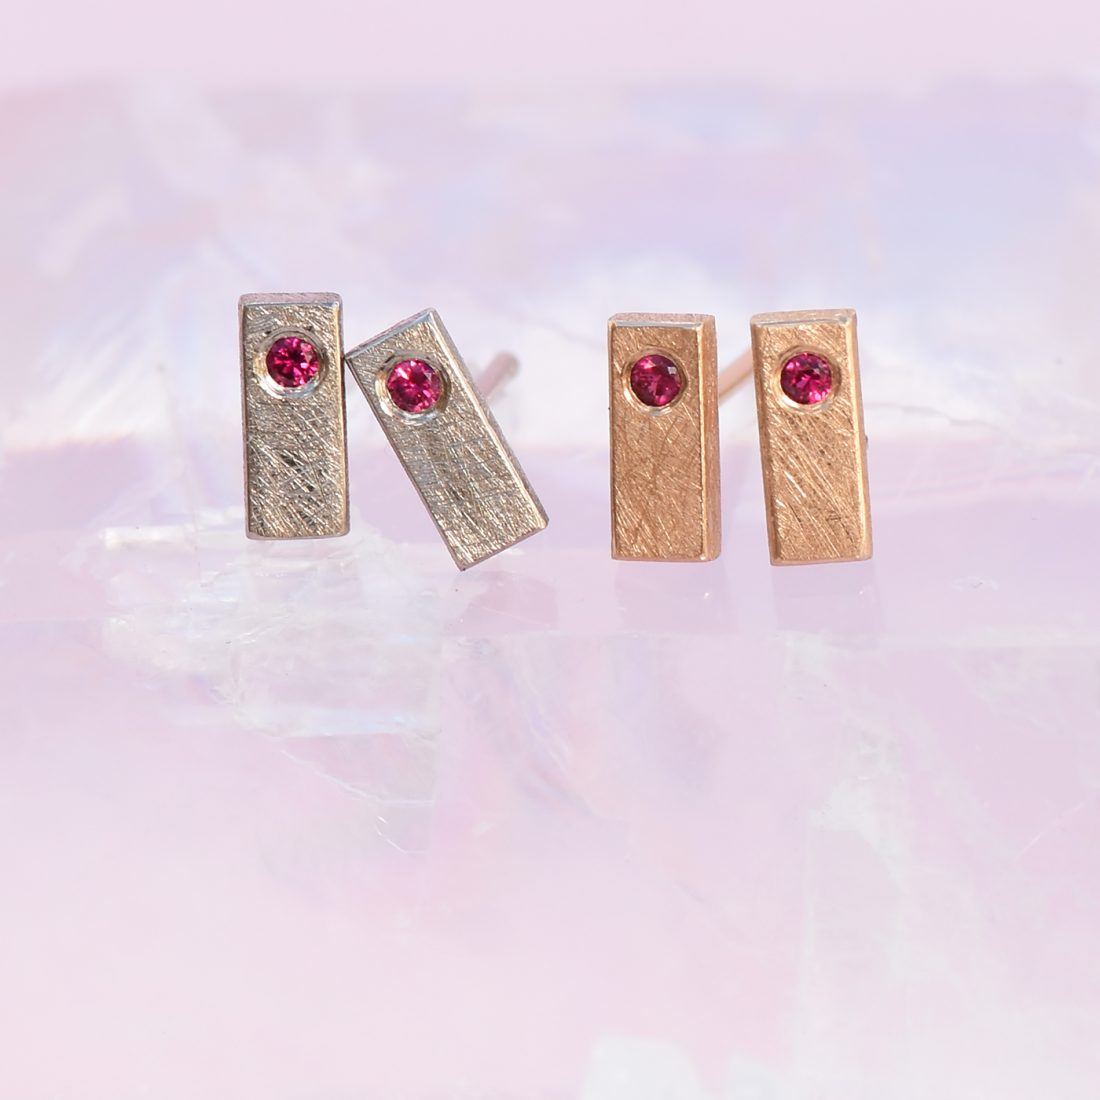 18ct white gold & rose gold ruby stud earrings